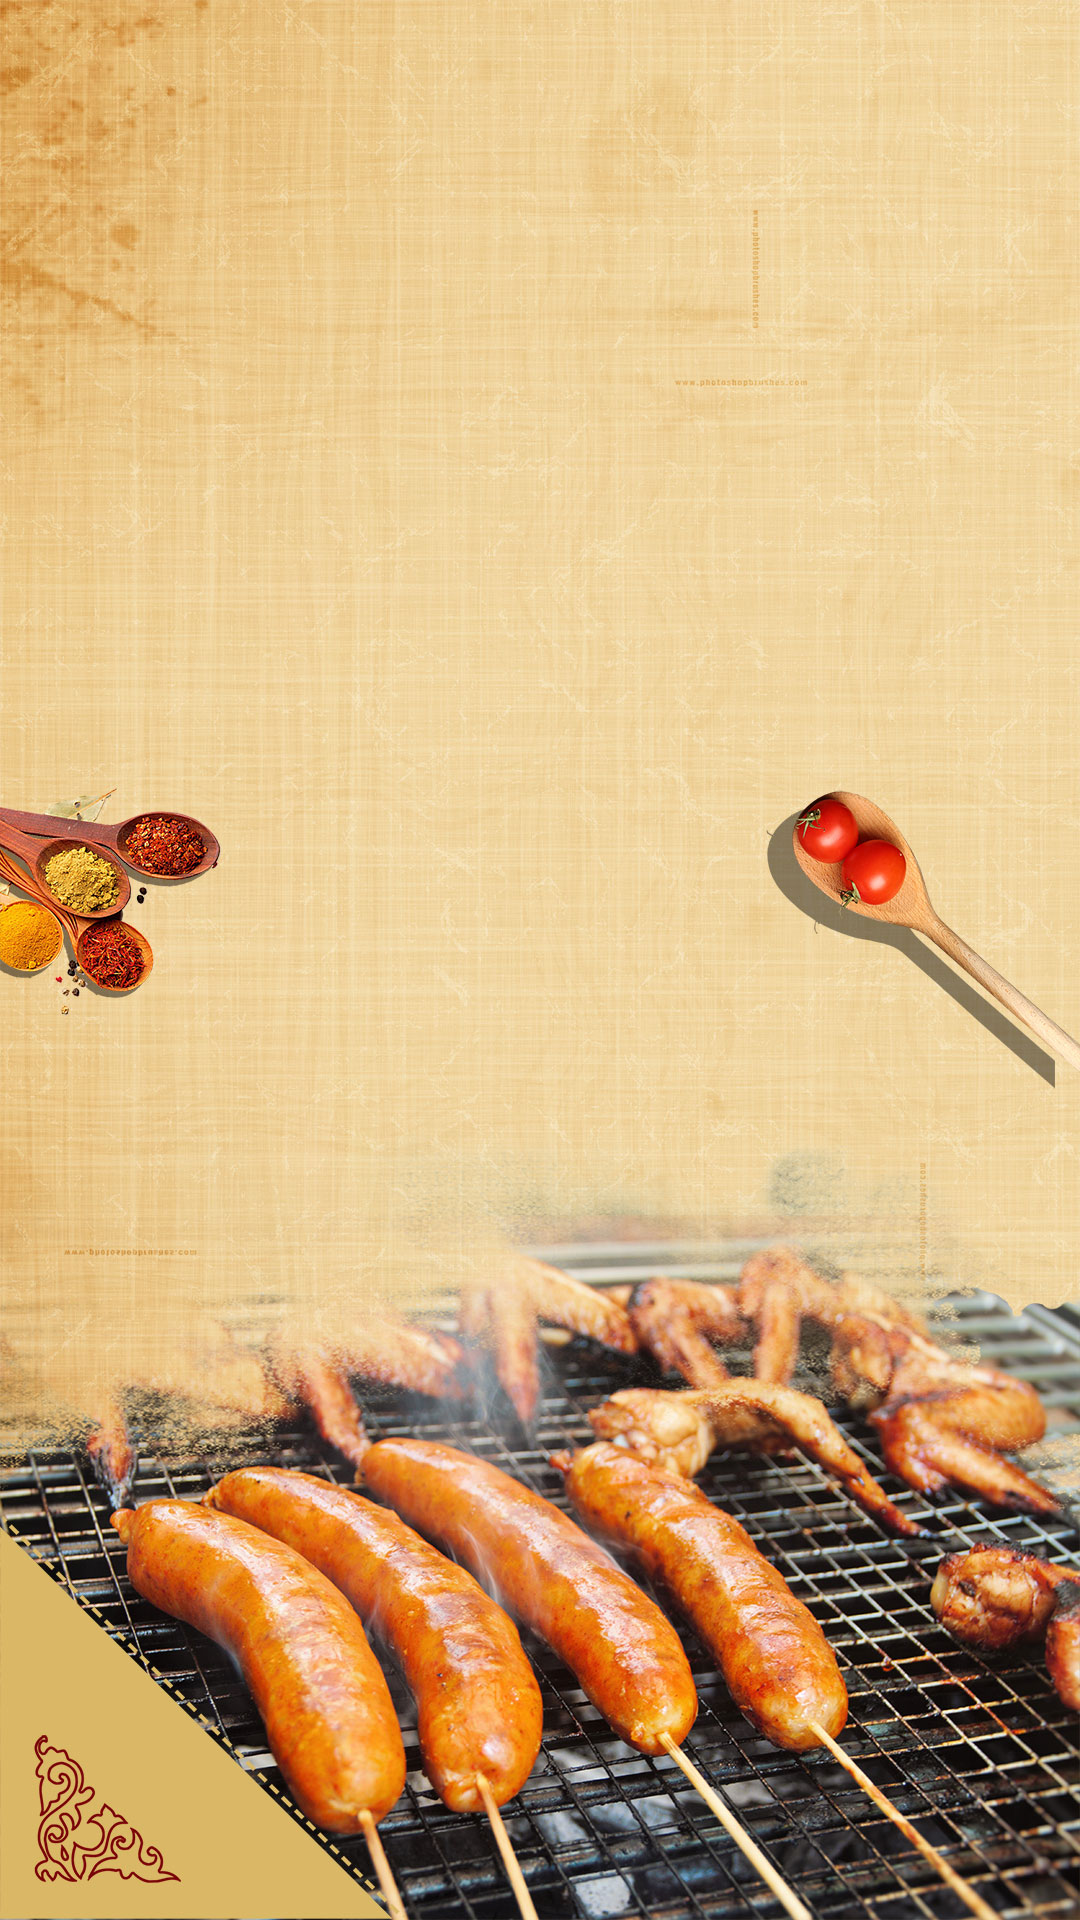 bbq chicken wings barbecue chinese wind h5 background